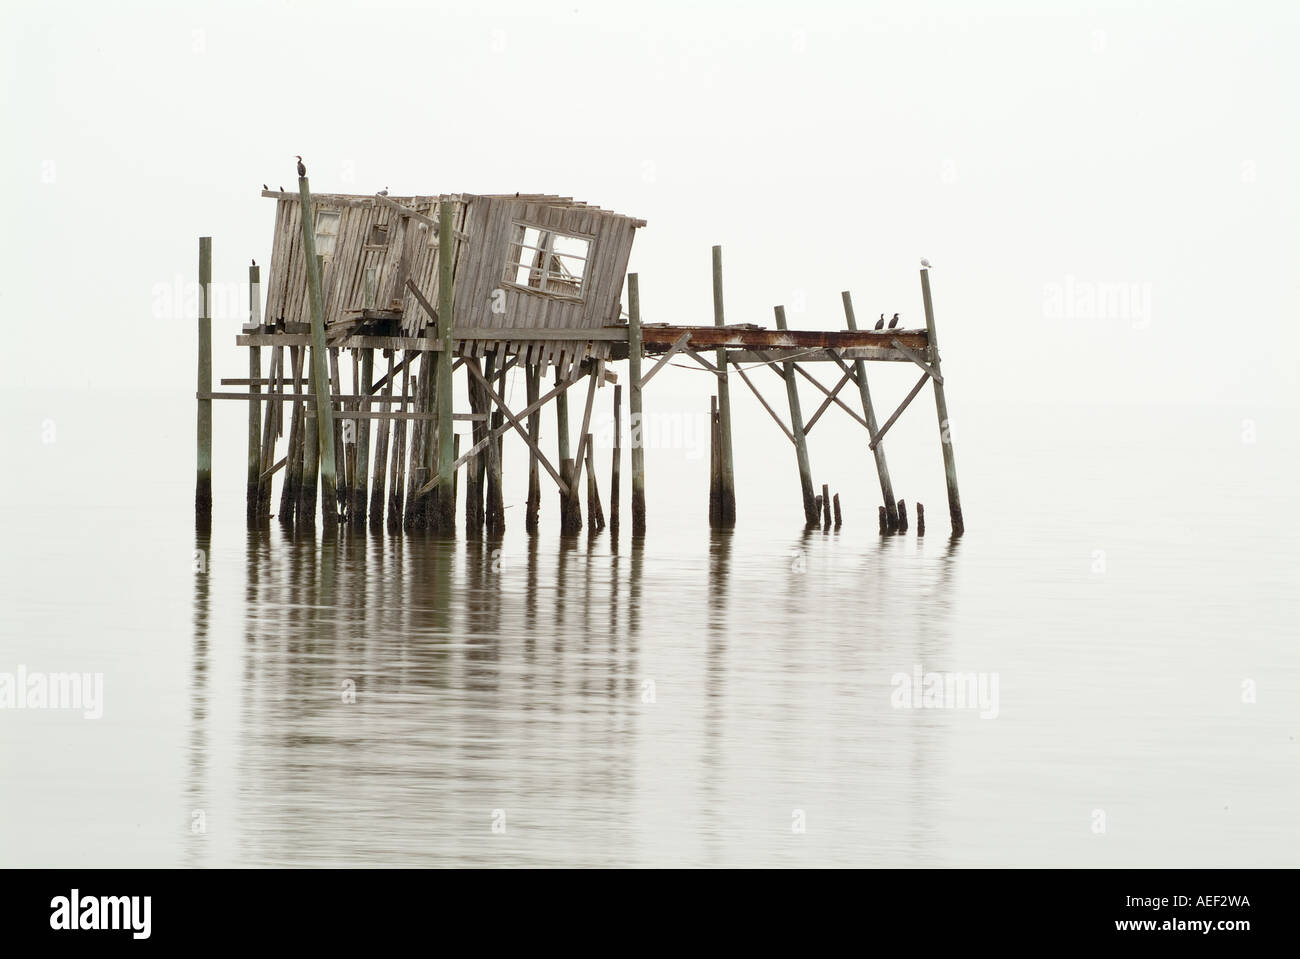 High Quality Wooden Damaged Run Down Boat House Over Water Cedar Key Florida Coastal  Scenic Moody Weathered Crusty Wood Structure